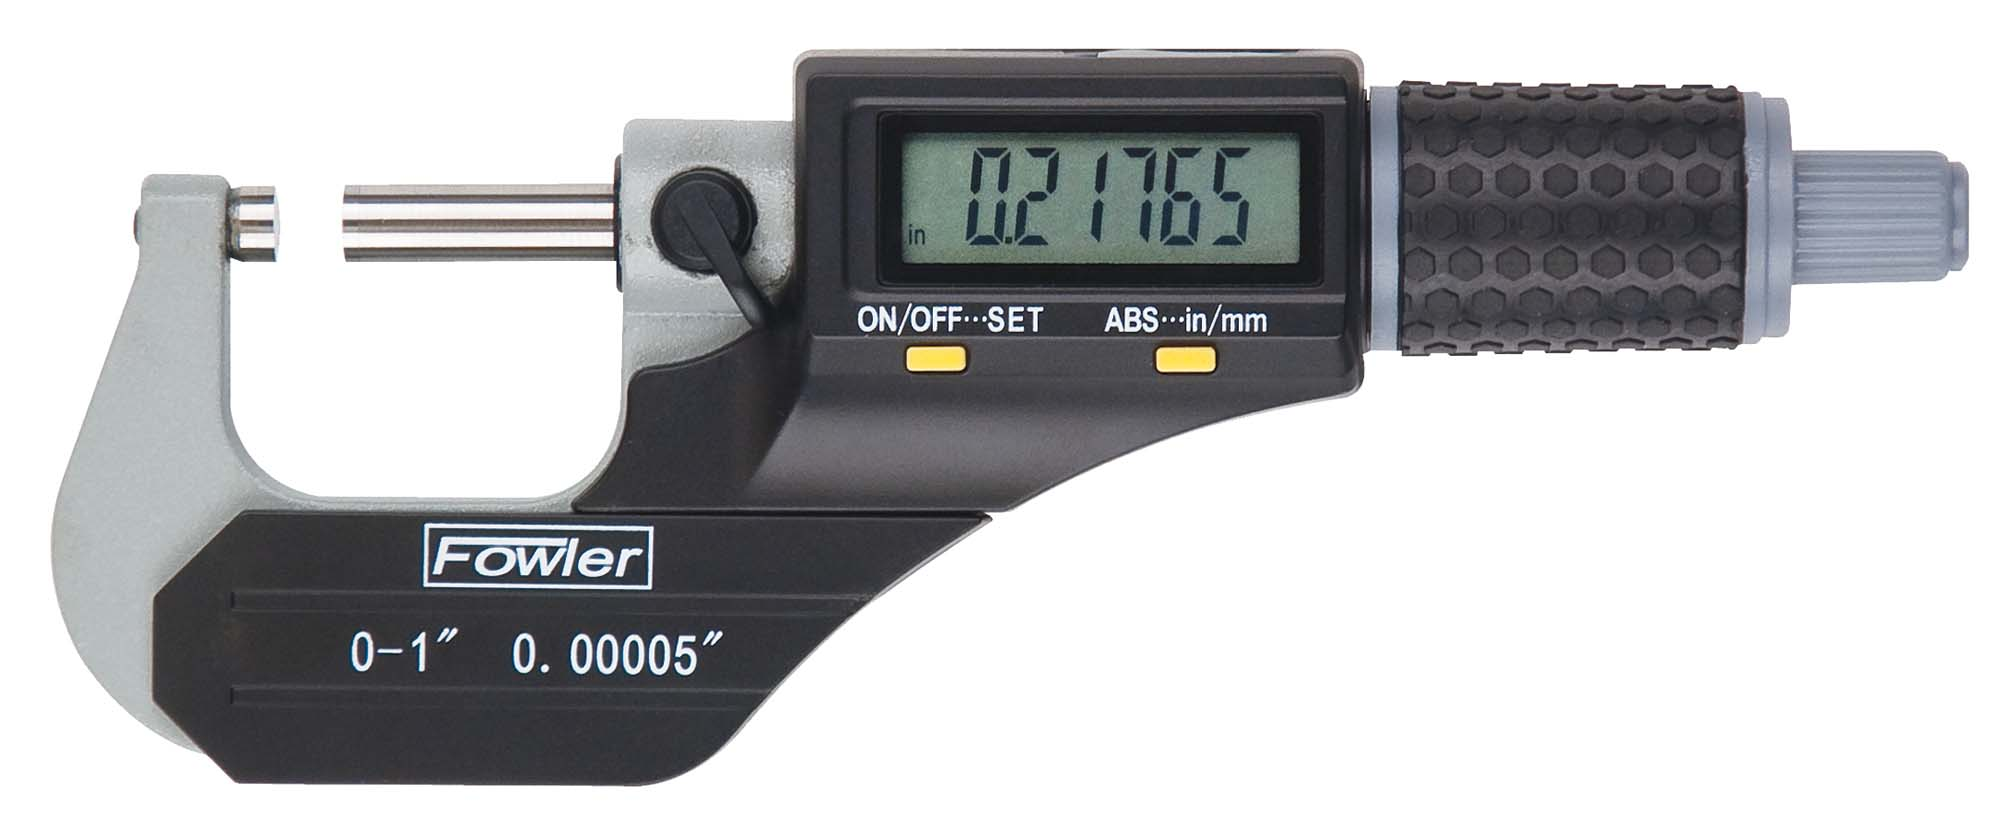 2-3 in. Fowler Xtra-Value II Electronic Micrometer